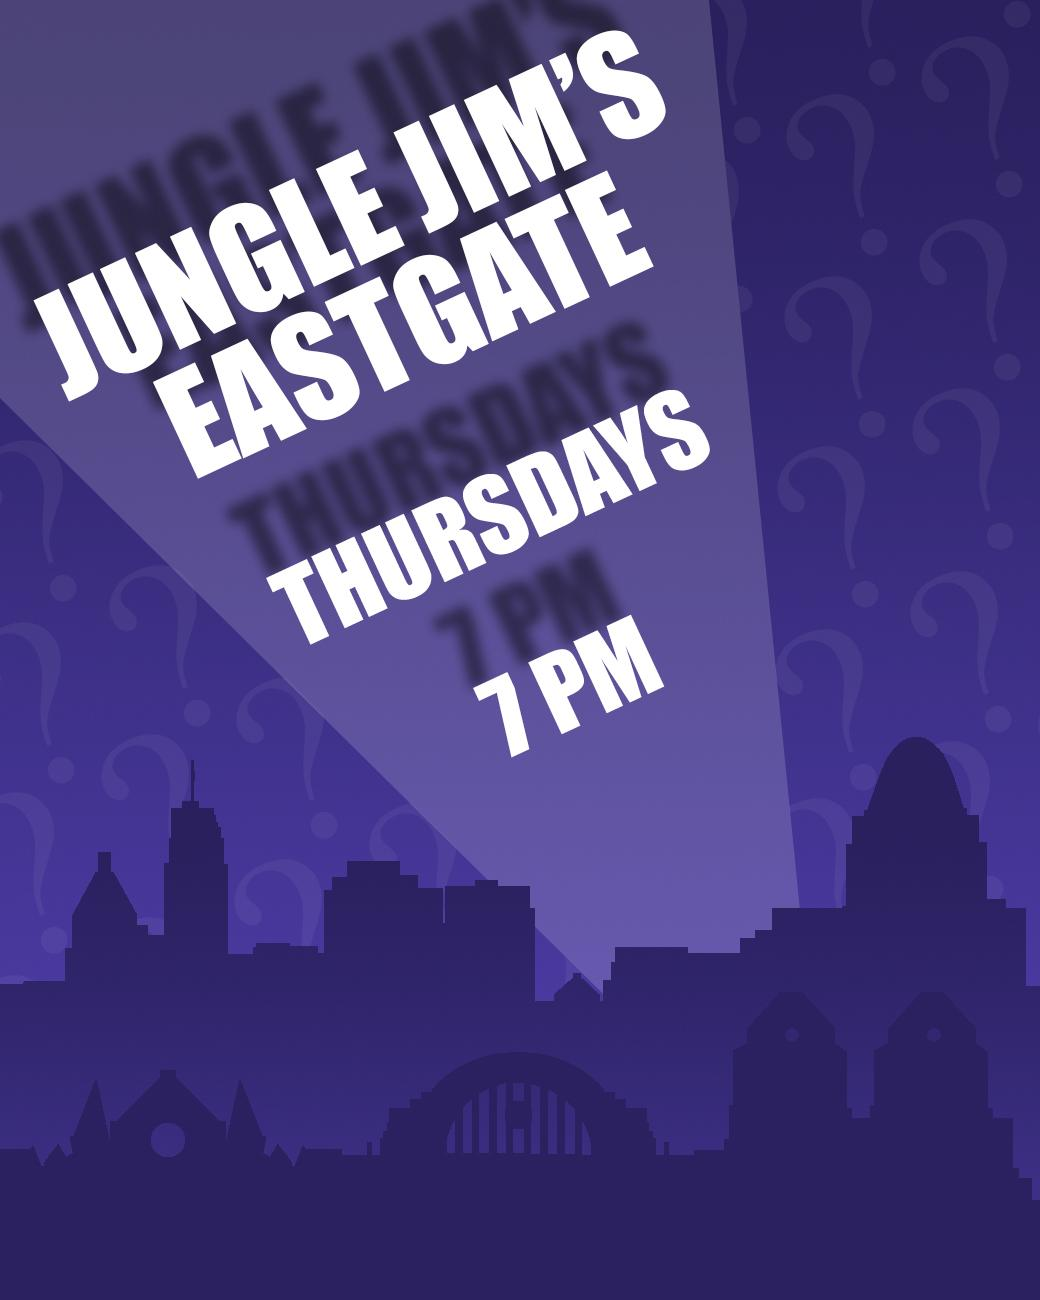 Jungle Jims in Eastgate has trivia every Thursday starting at 7 PM. ADDRESS: 4450 Eastgate South Drive (45245) / Image: Phil Armstrong, Cincinnati Refined // Published: 8.30.17